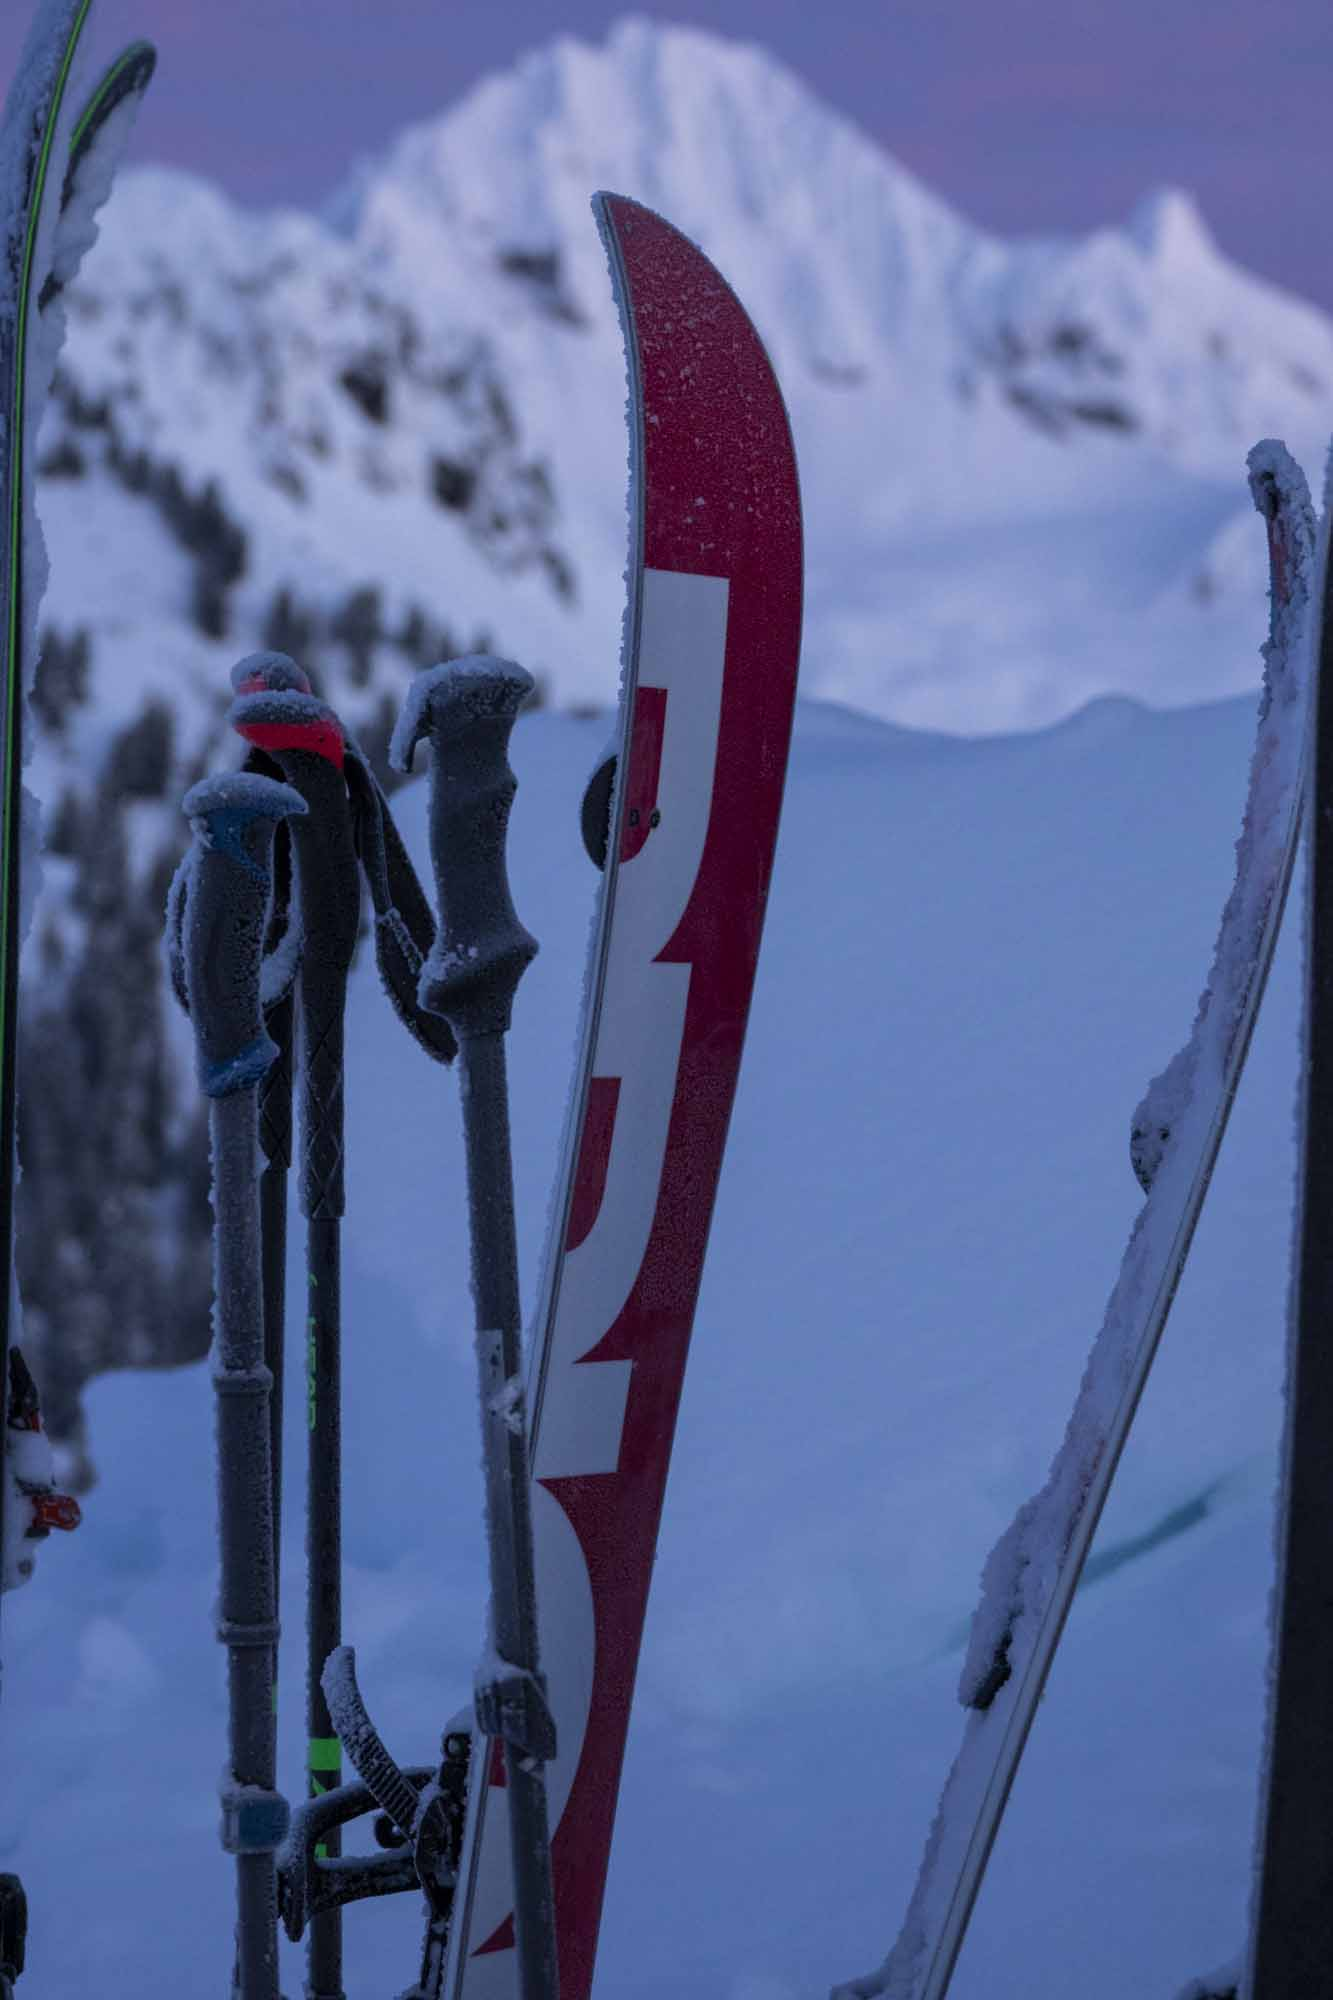 The-Garibaldi-100-Project-photo-by-BEN-HAGGAR-skis-sunrise